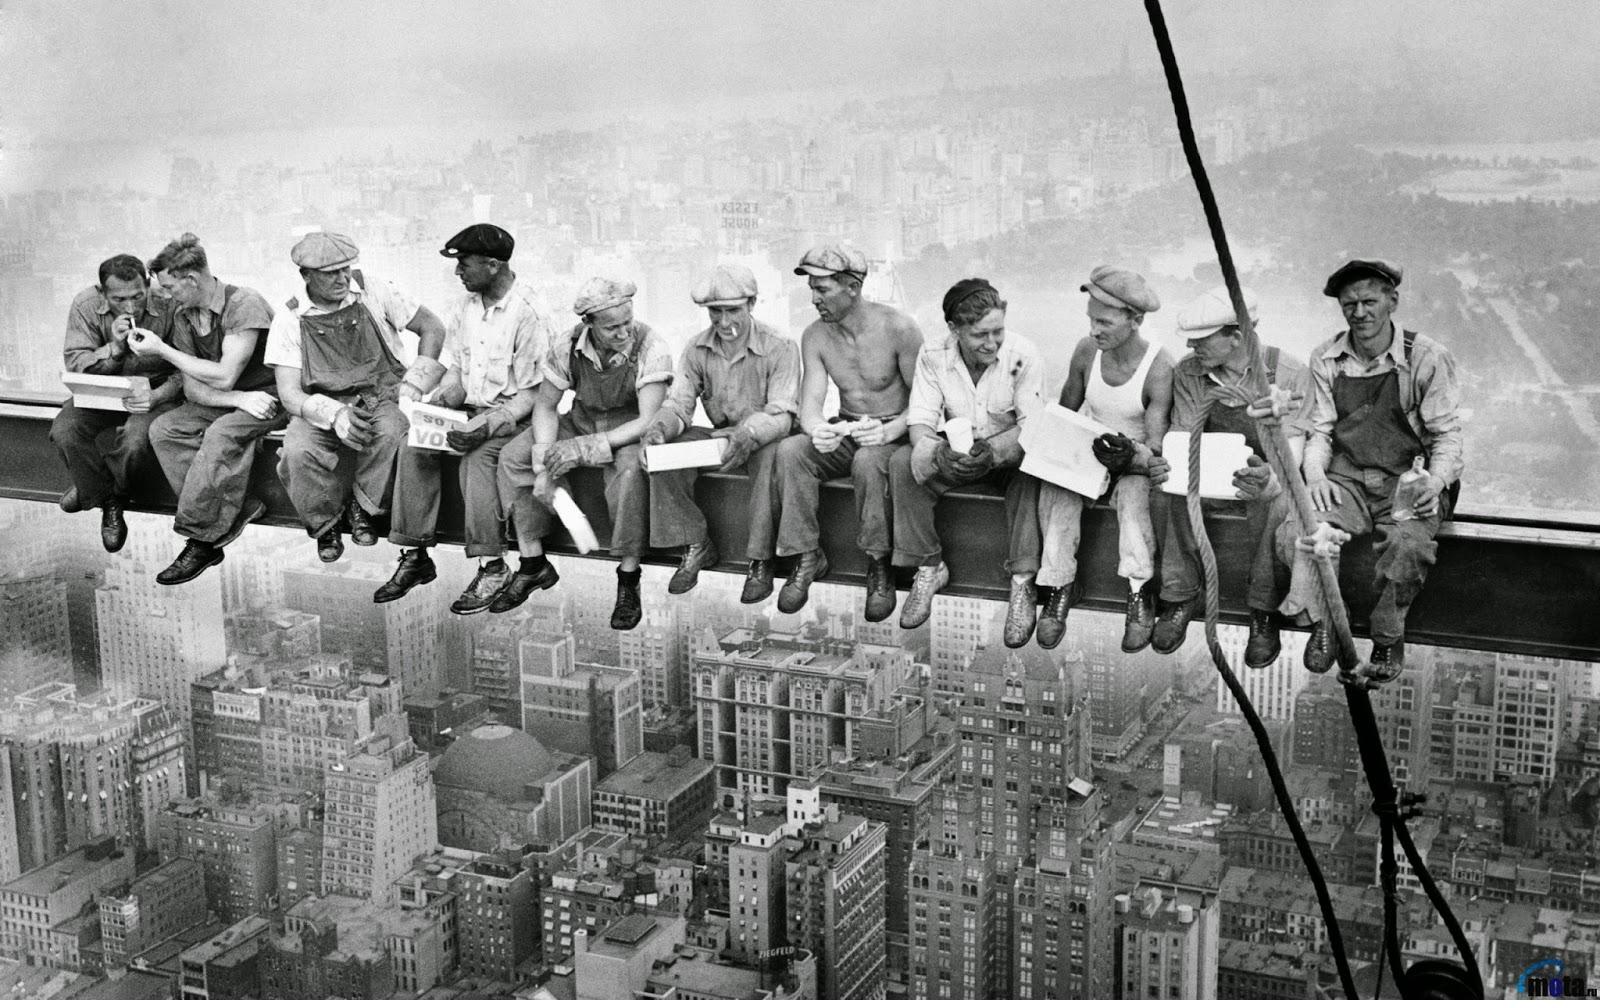 new york history geschichte lunch atop a skyscraper building search part 1. Black Bedroom Furniture Sets. Home Design Ideas